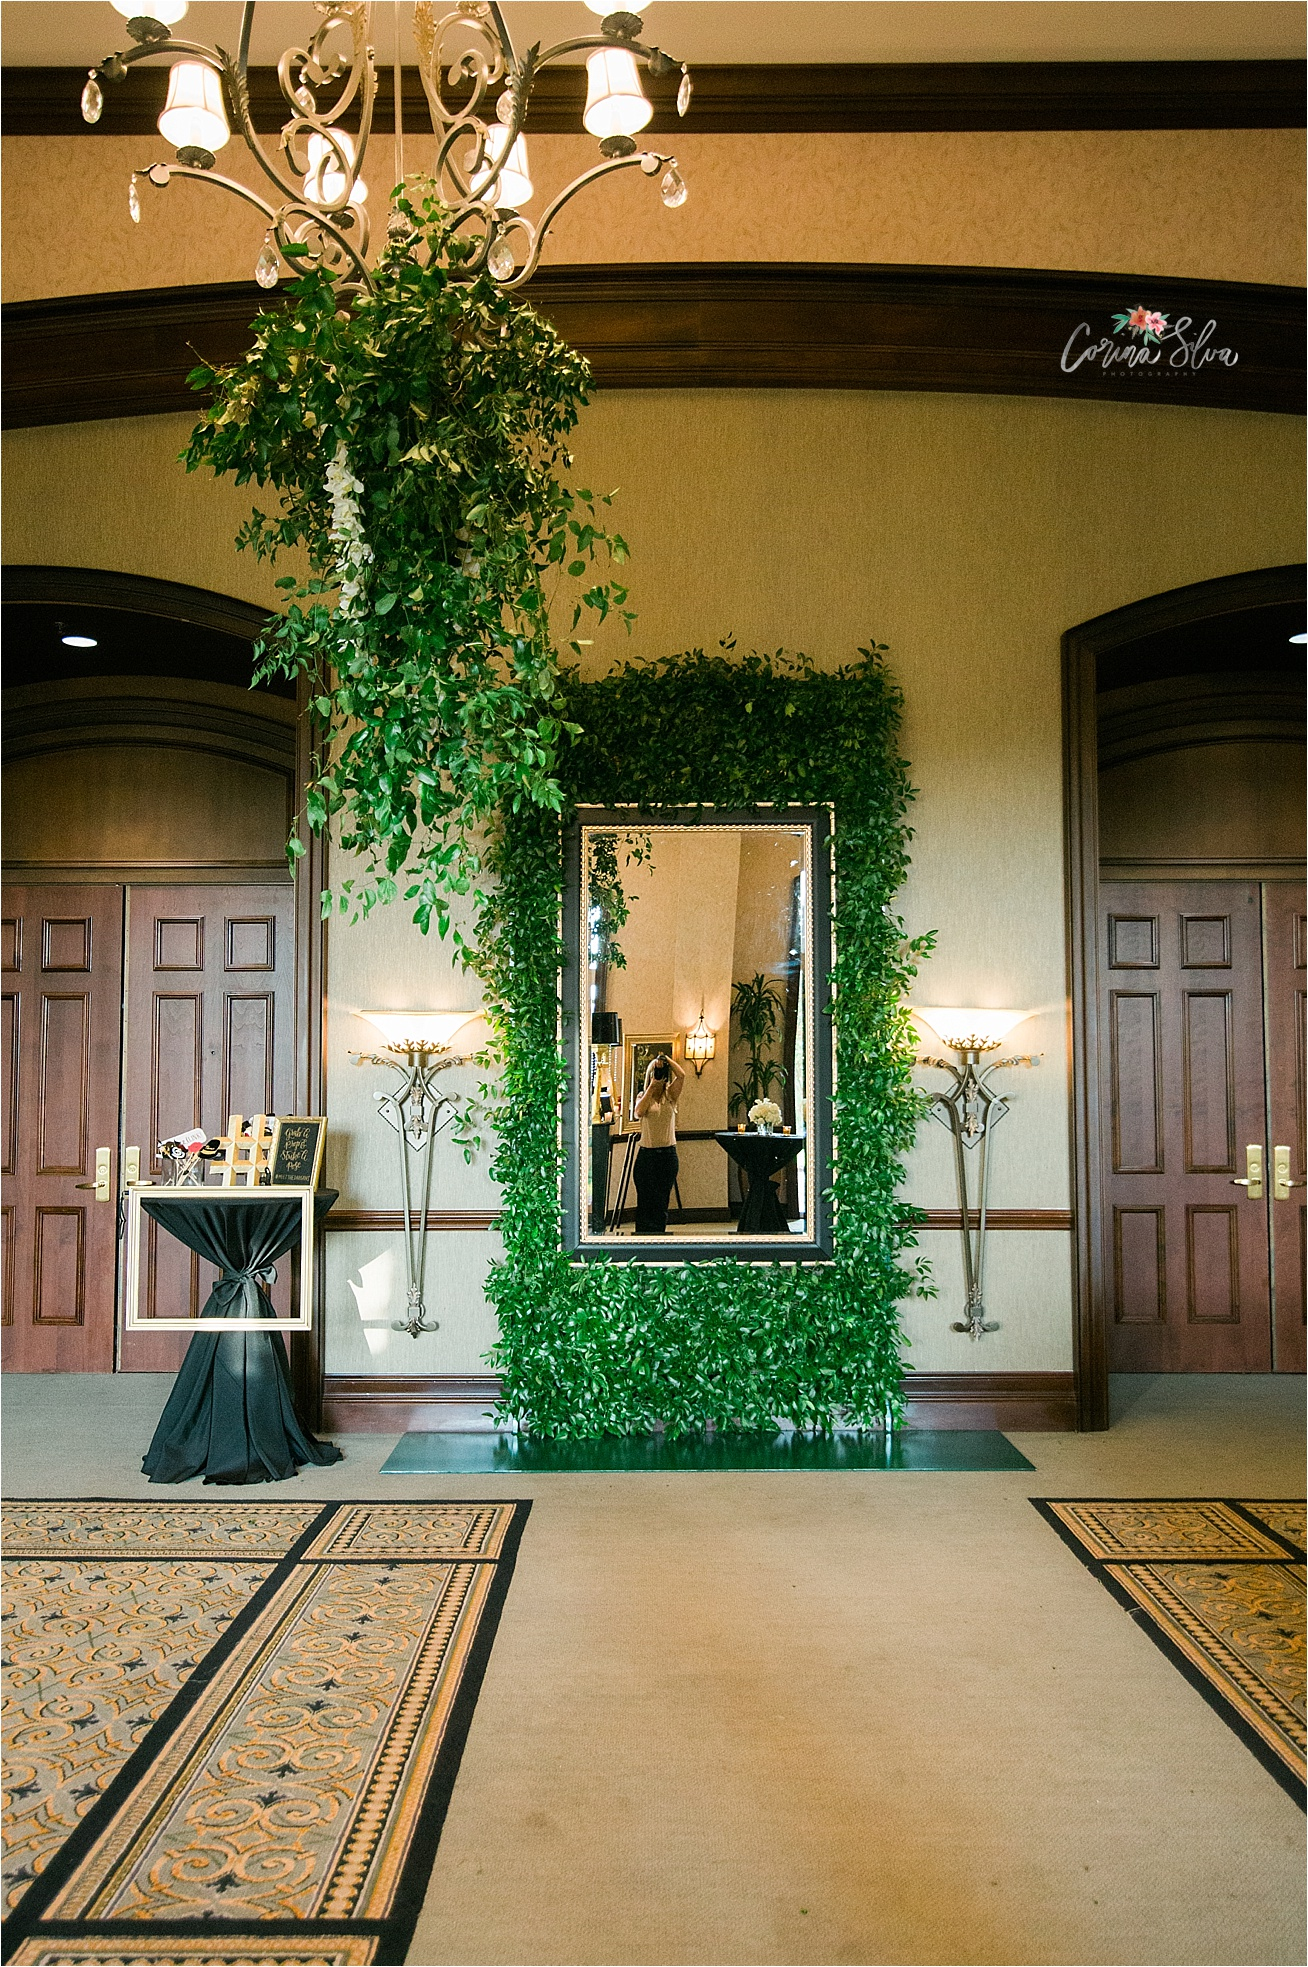 RSG-Event-and-Designs-luxury-wedding-decor-photos, Corina-Silva-Studios_0025.jpg